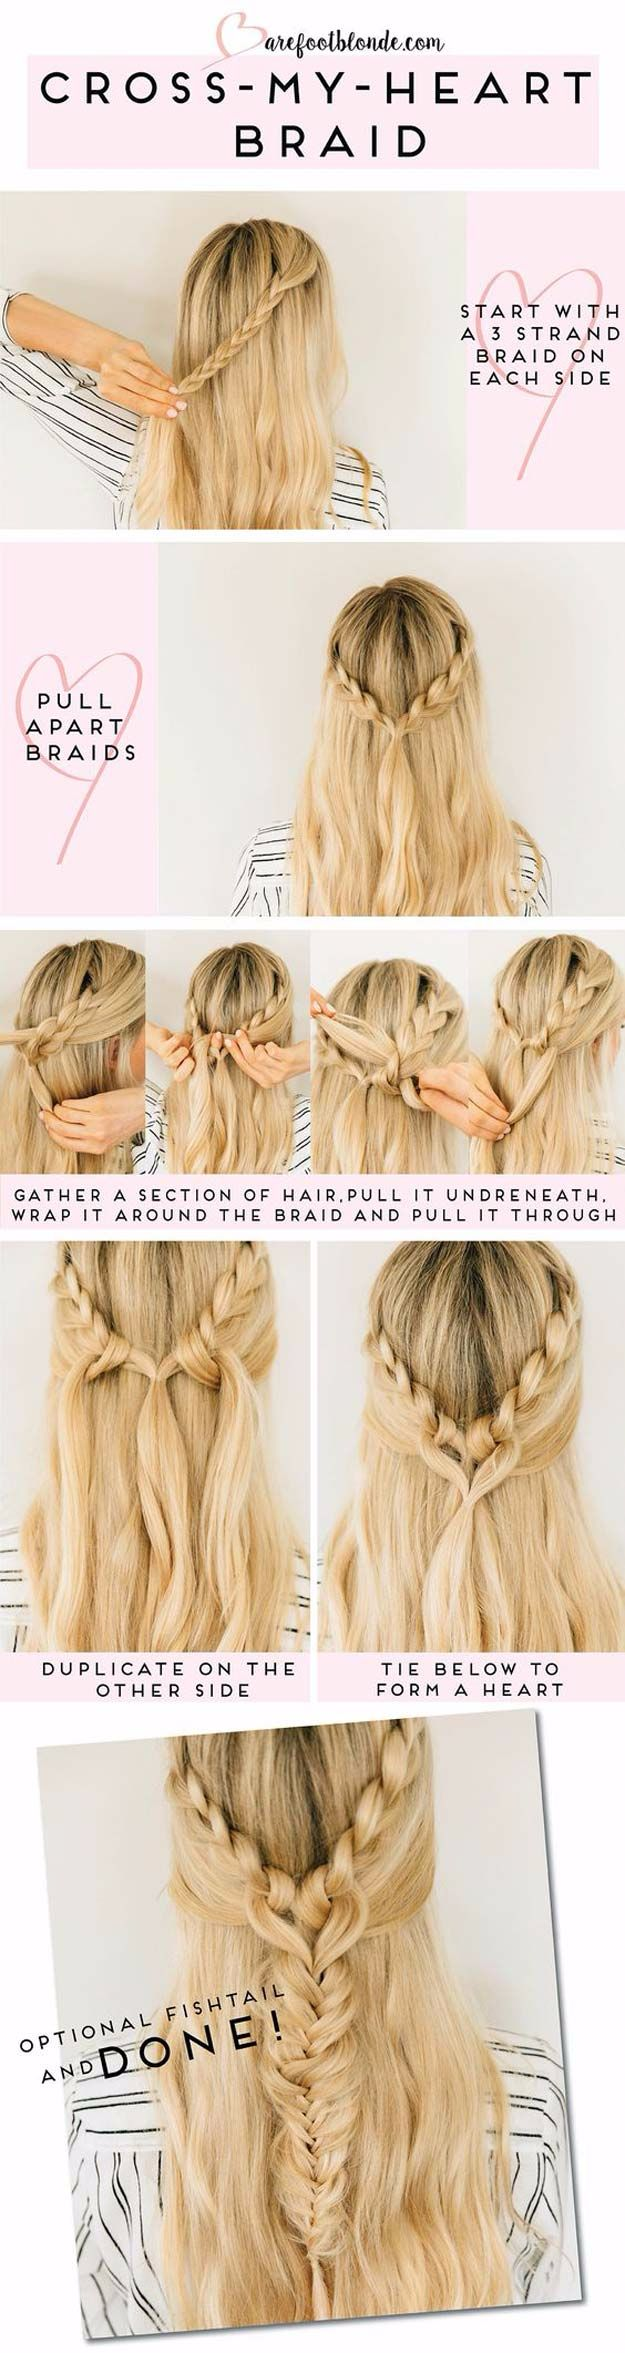 Easy Braids With Tutorials - Cross Heart Braid - Cute Braiding Tutorials for Teens, Girls and Women - Easy Step by Step Braid Ideas - Quick Hairstyles for School - Creative Braids for Teenagers - Tutorial and Instructions for Hair Braiding http://diyprojectsforteens.com/easy-braids-tutorials